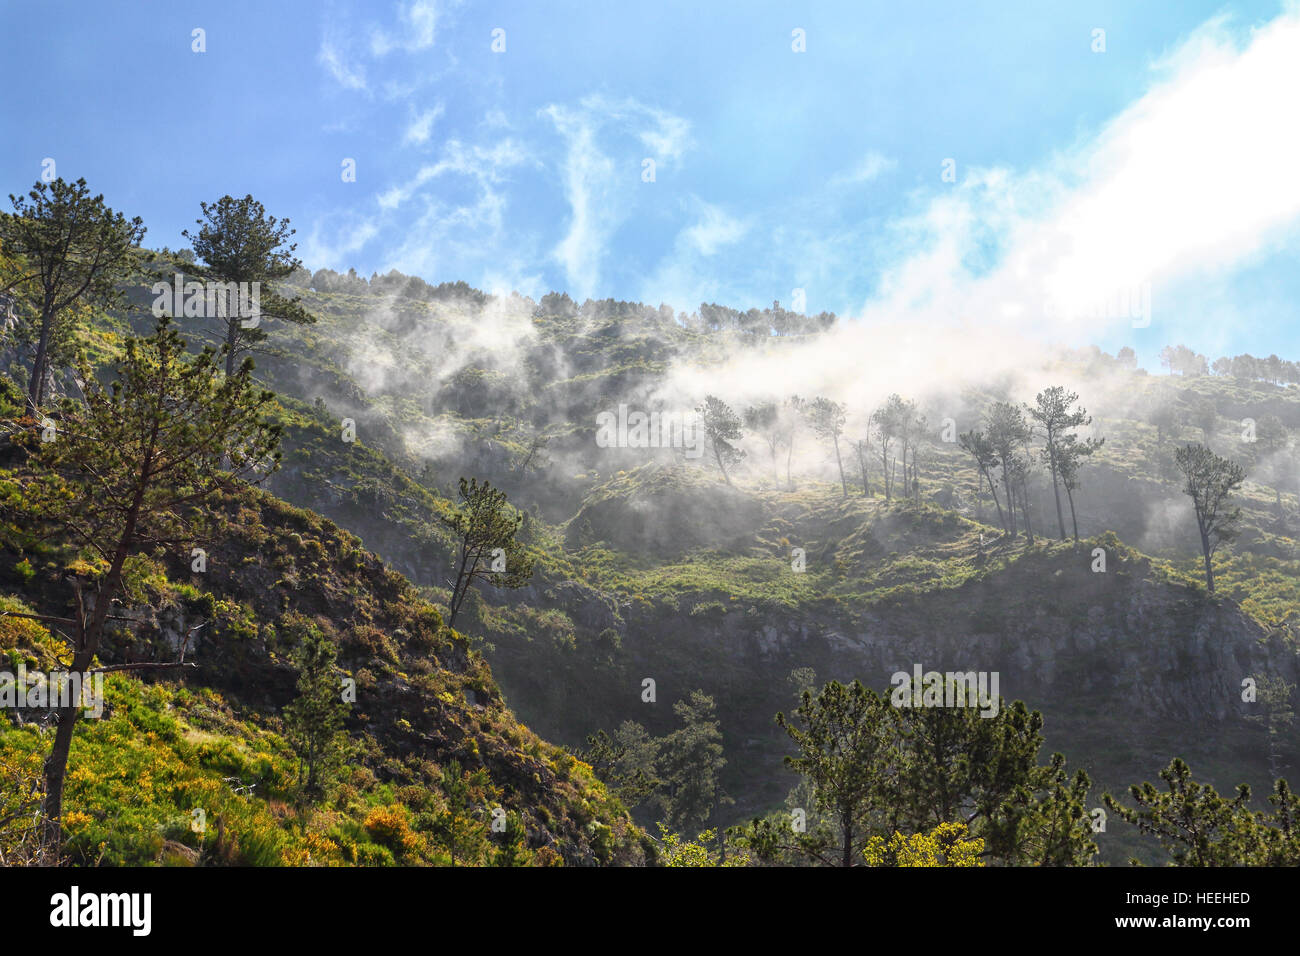 Mountain view on the Portuguese island of Madeira - Stock Image